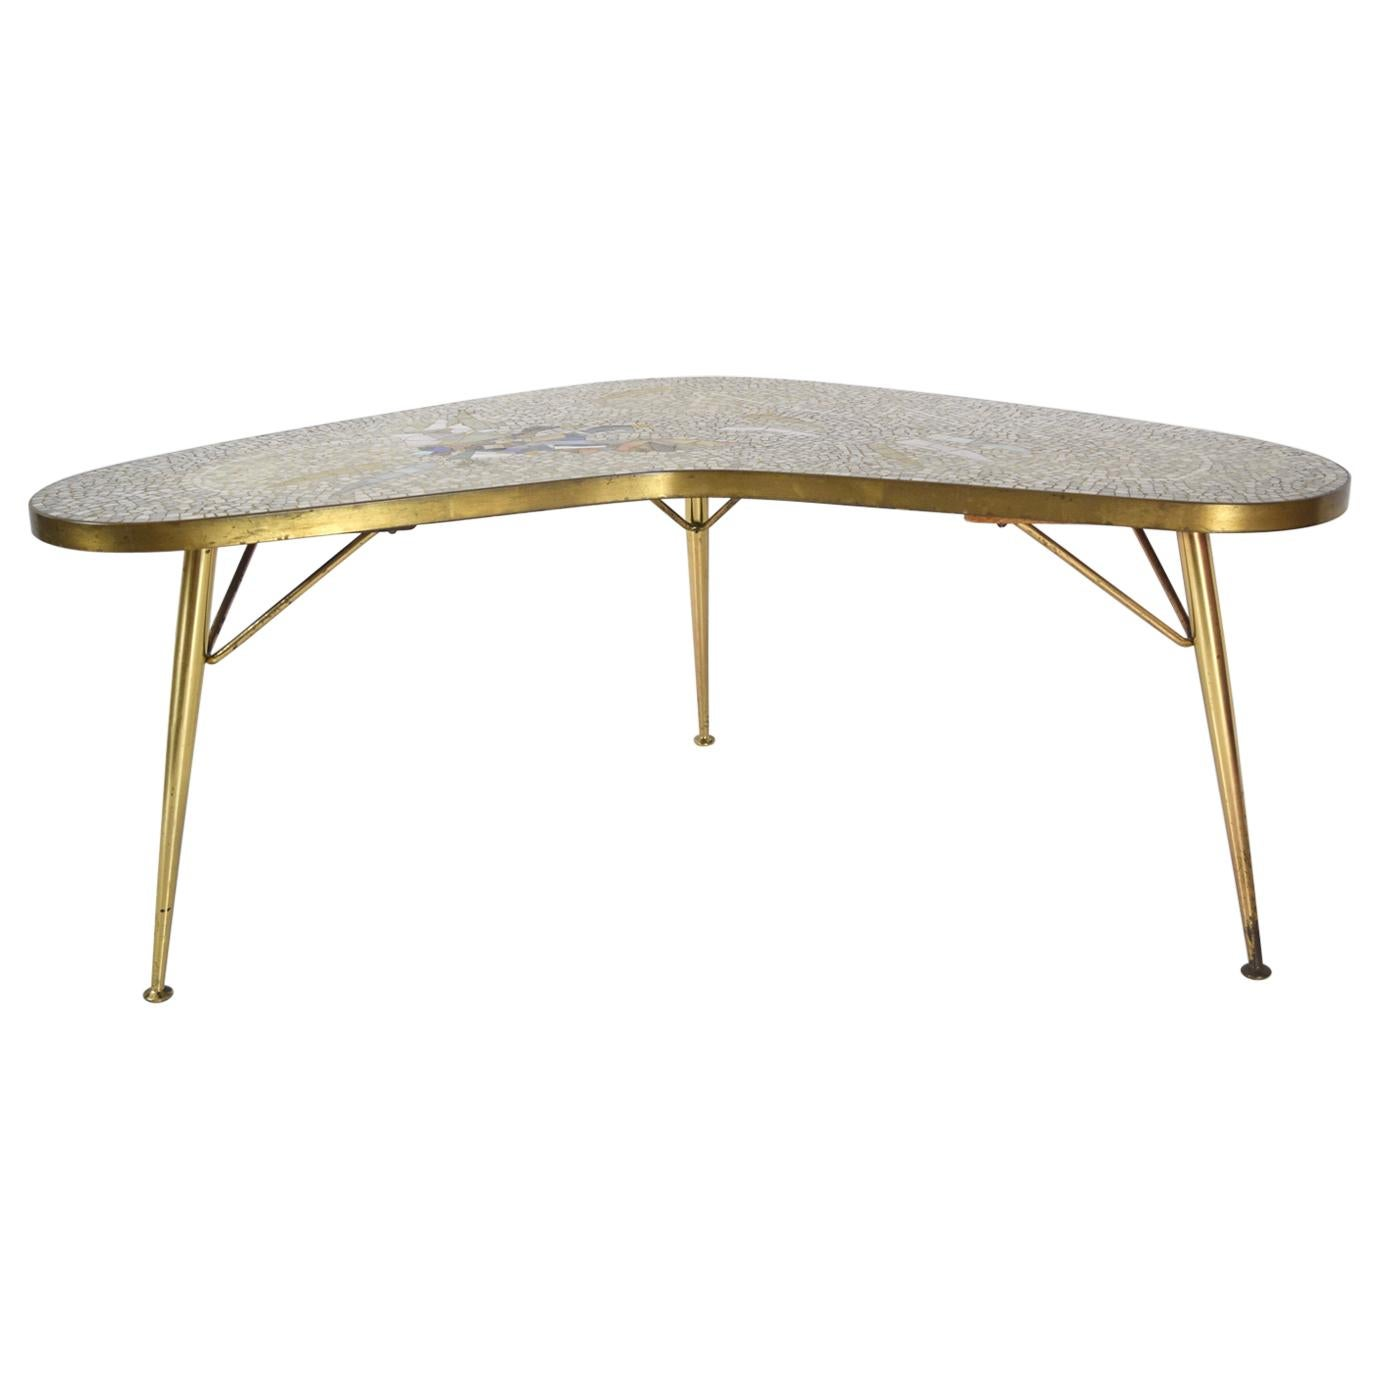 Mosaic and Brass Coffee Table by Berthold Müller-Oerlinghausen, Germany 1950s